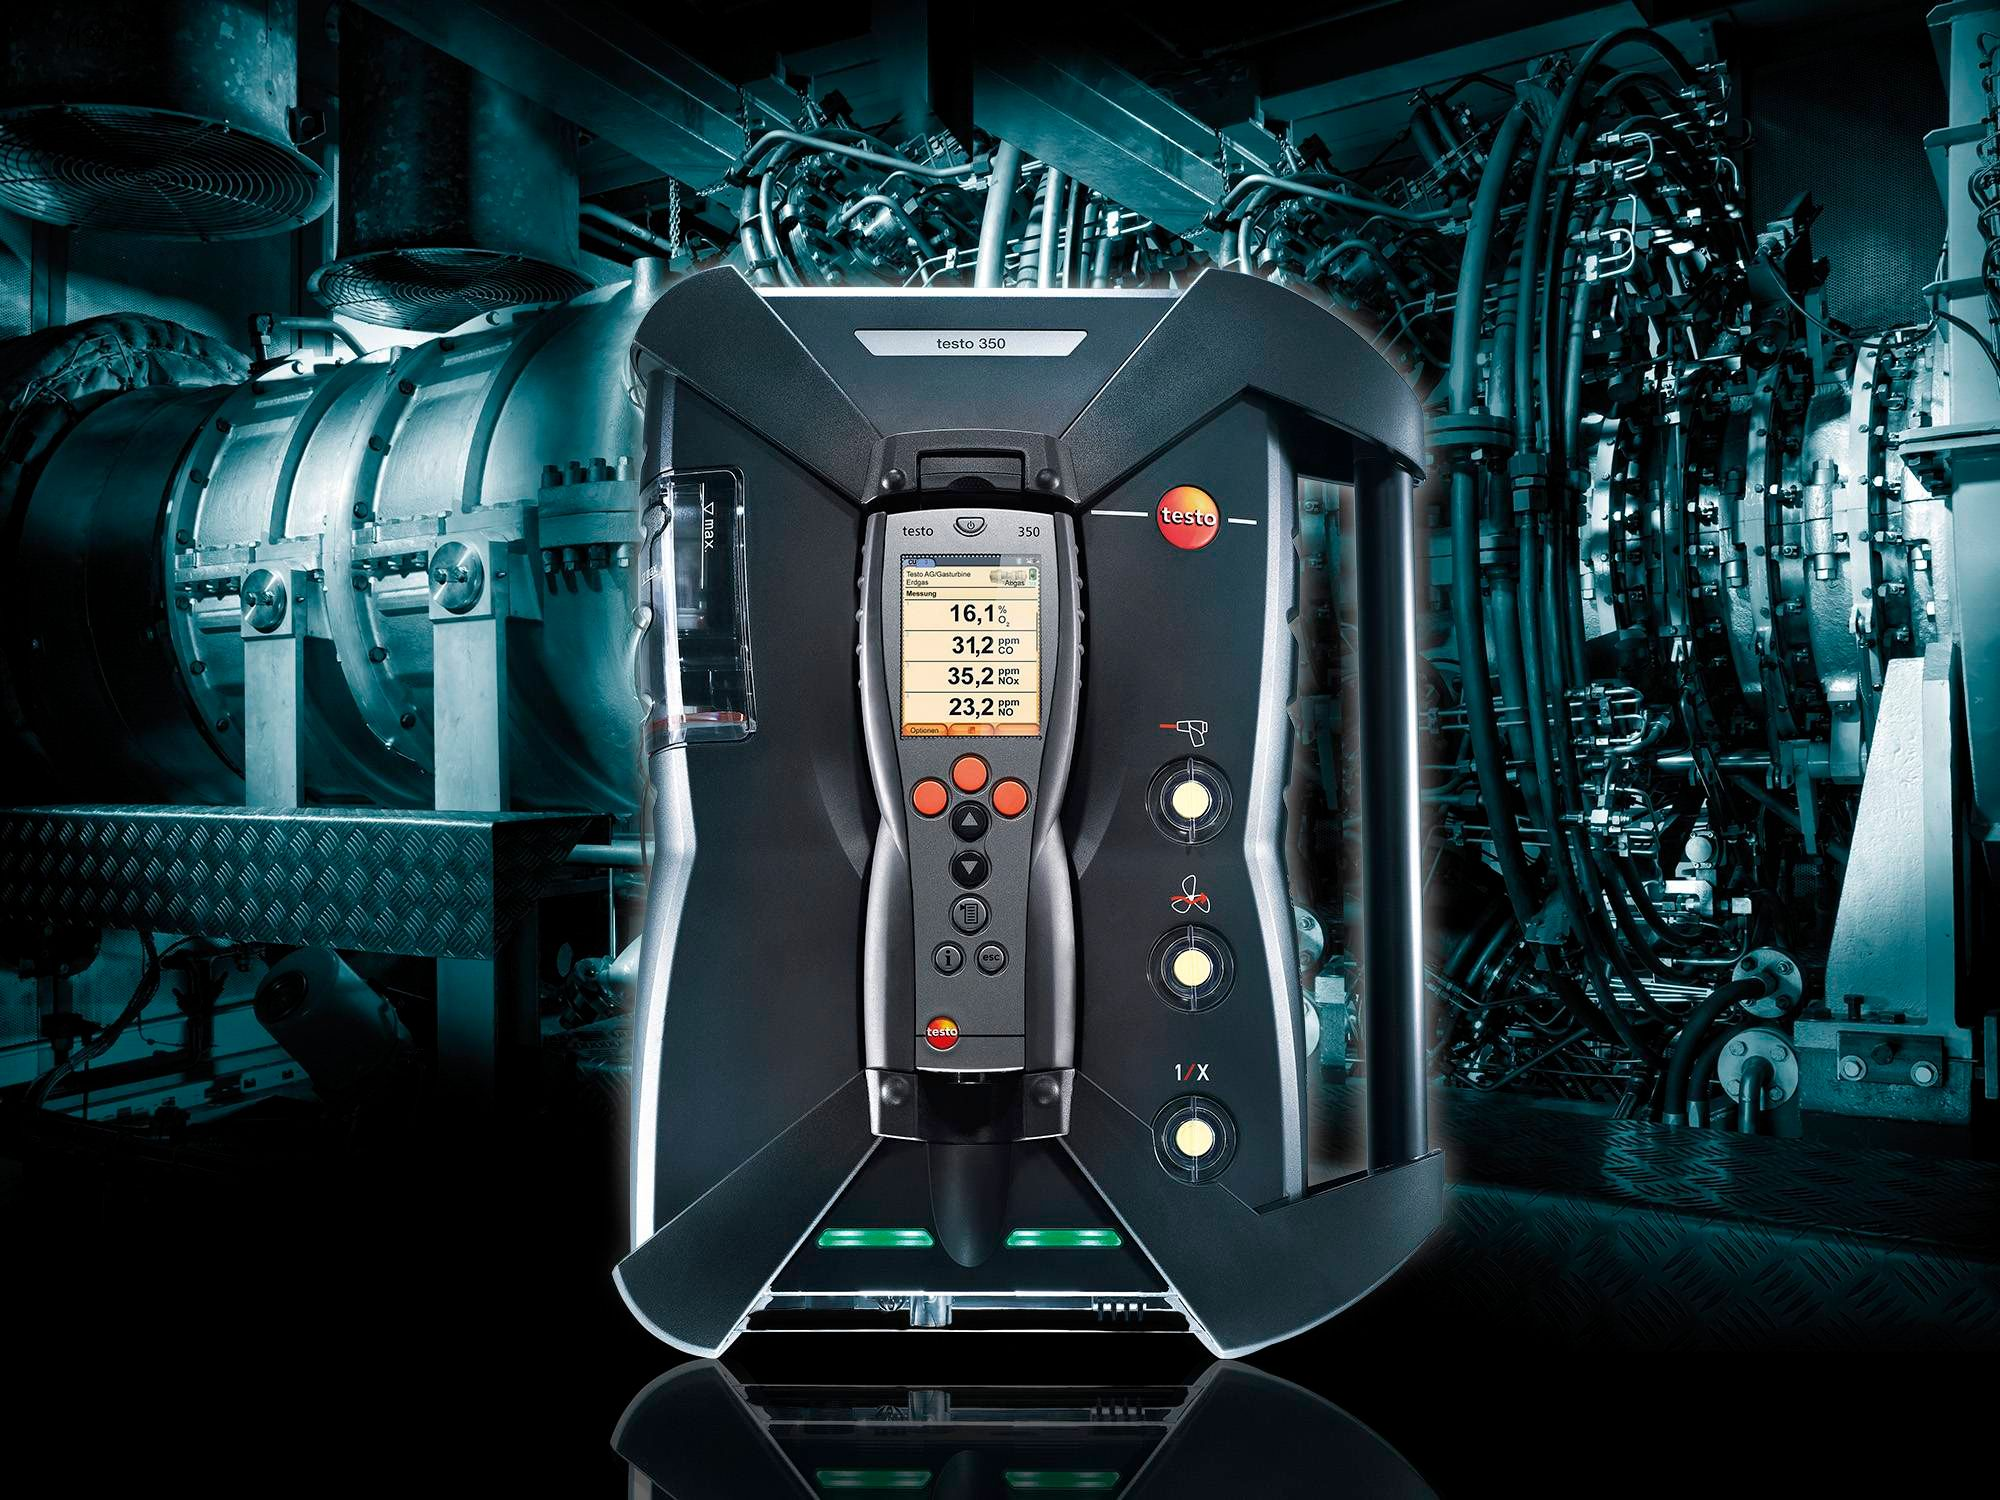 Emission analyzer testo 350: Ideal for gas turbines